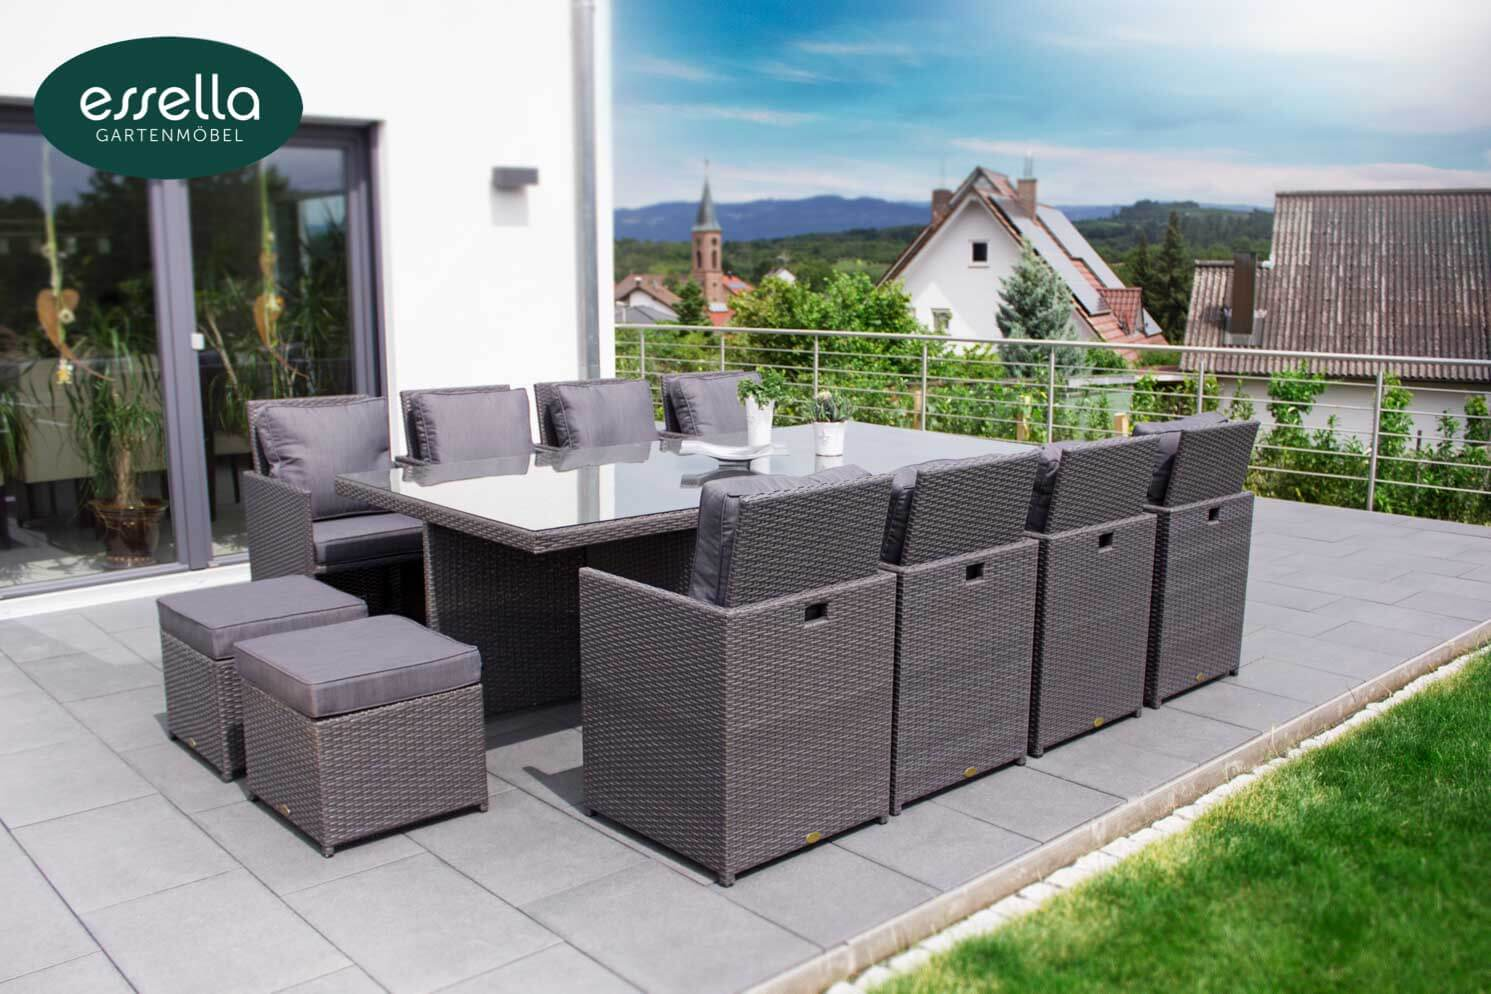 essella polyrattan sitzgruppe vienna 8 personen too. Black Bedroom Furniture Sets. Home Design Ideas